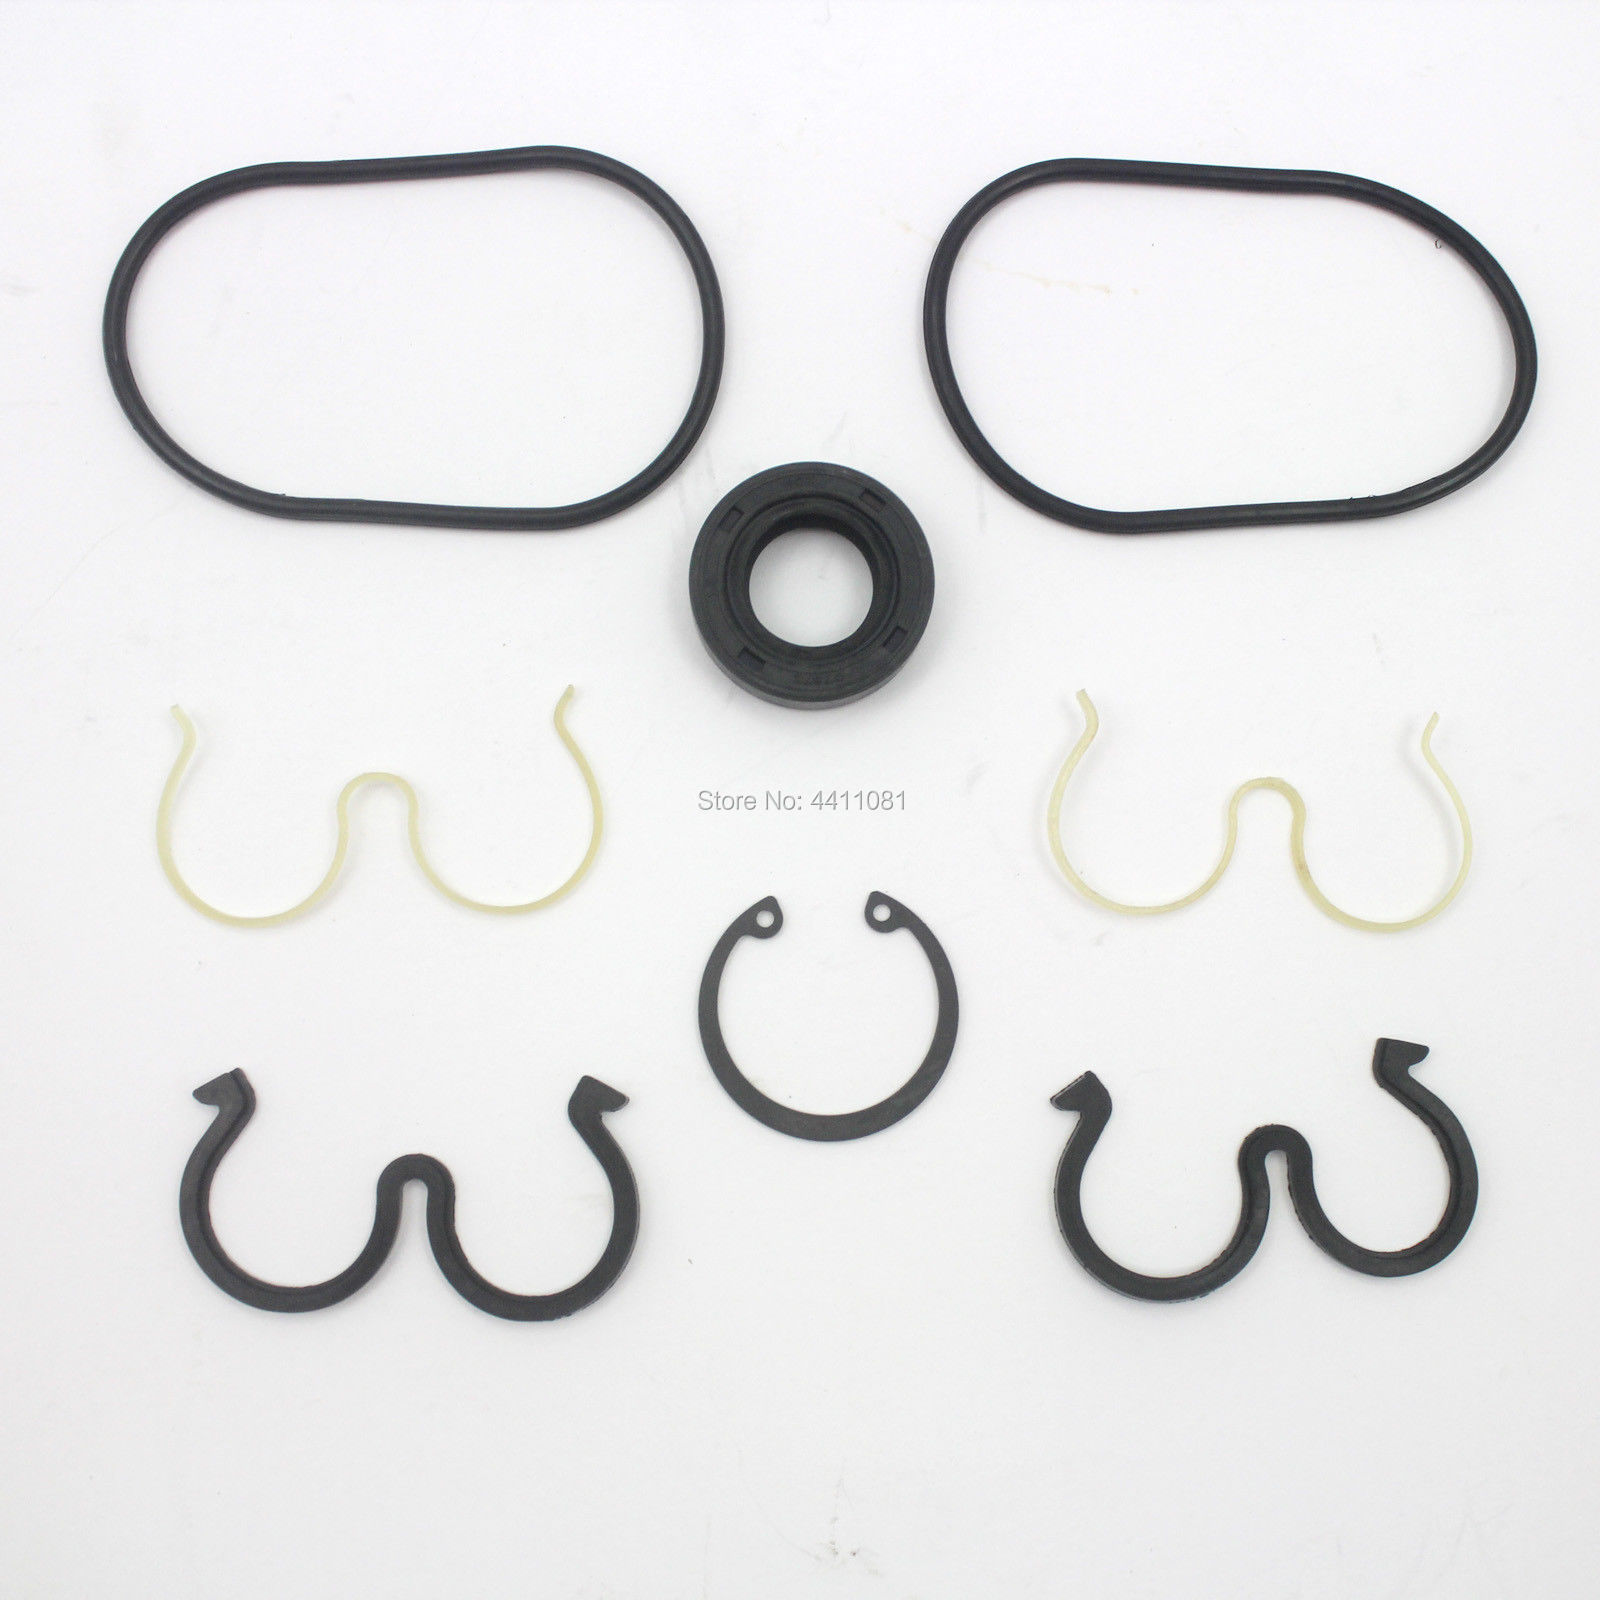 For Hitachi EX200-1 Gear Pump Seal Repair Service Kit 4206167 Excavator Oil Seals, 3 month warranty